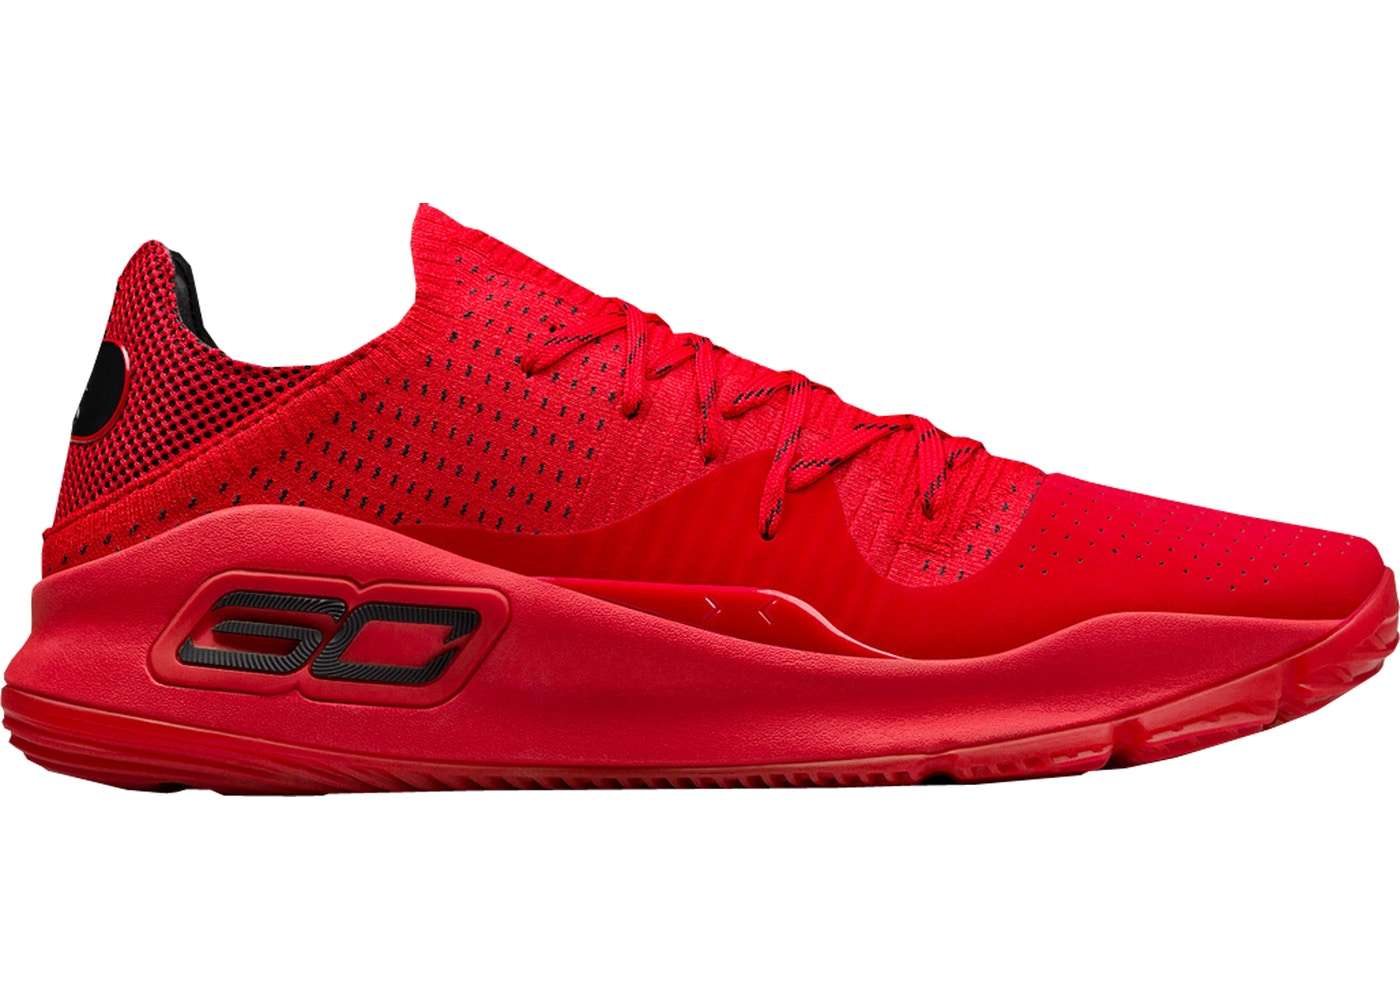 huge selection of afdbe 93965 Under Armour Curry 4 Low Nothing But Nets - 3000083-600